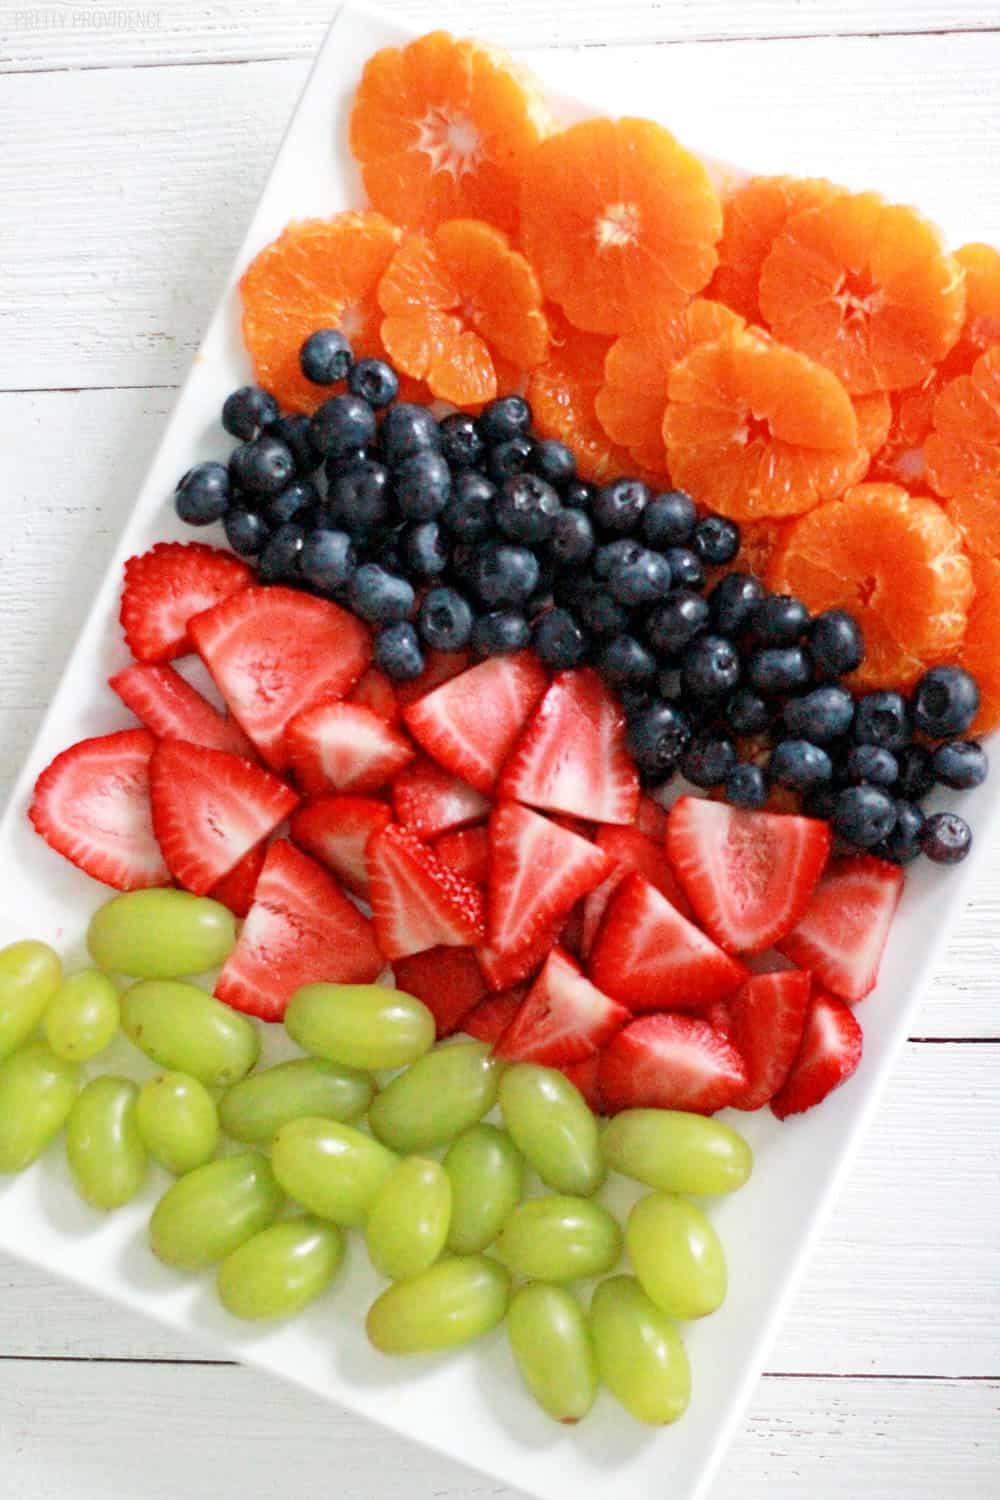 Colorful fruit salad - strawberries, blueberries, green grapes and oranges!